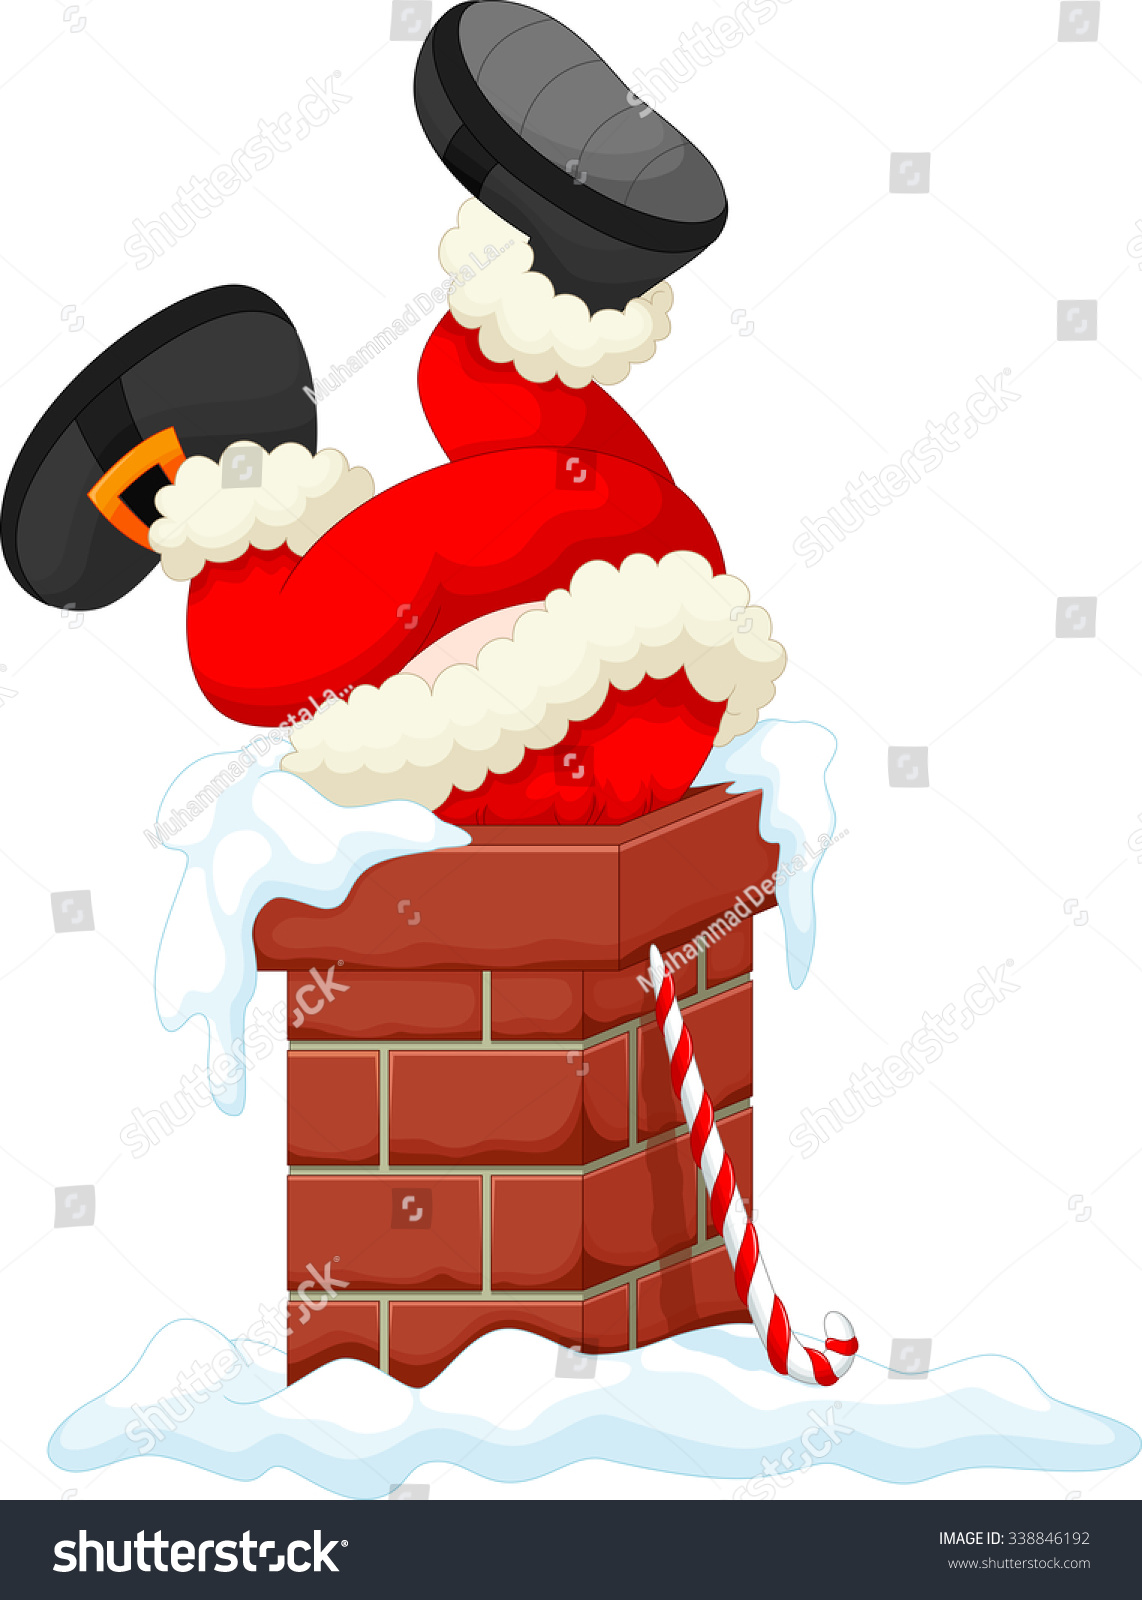 Santa Claus stuck in the Chimney - Santa Chimney PNG HD